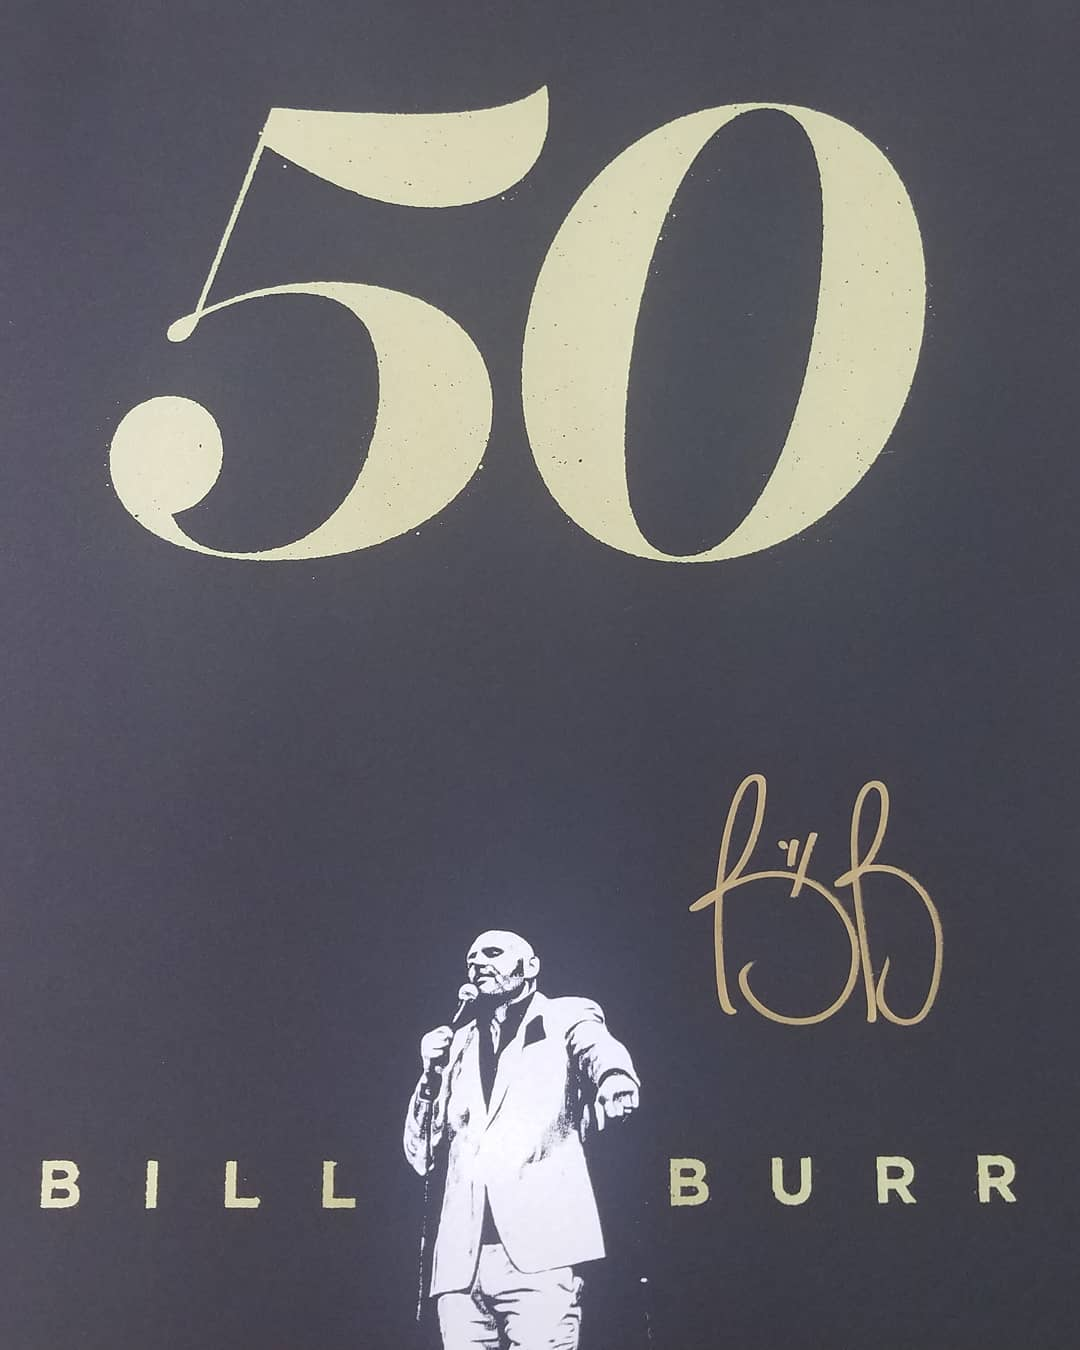 Bill Burr 50 Tour Poster Fonts In Use